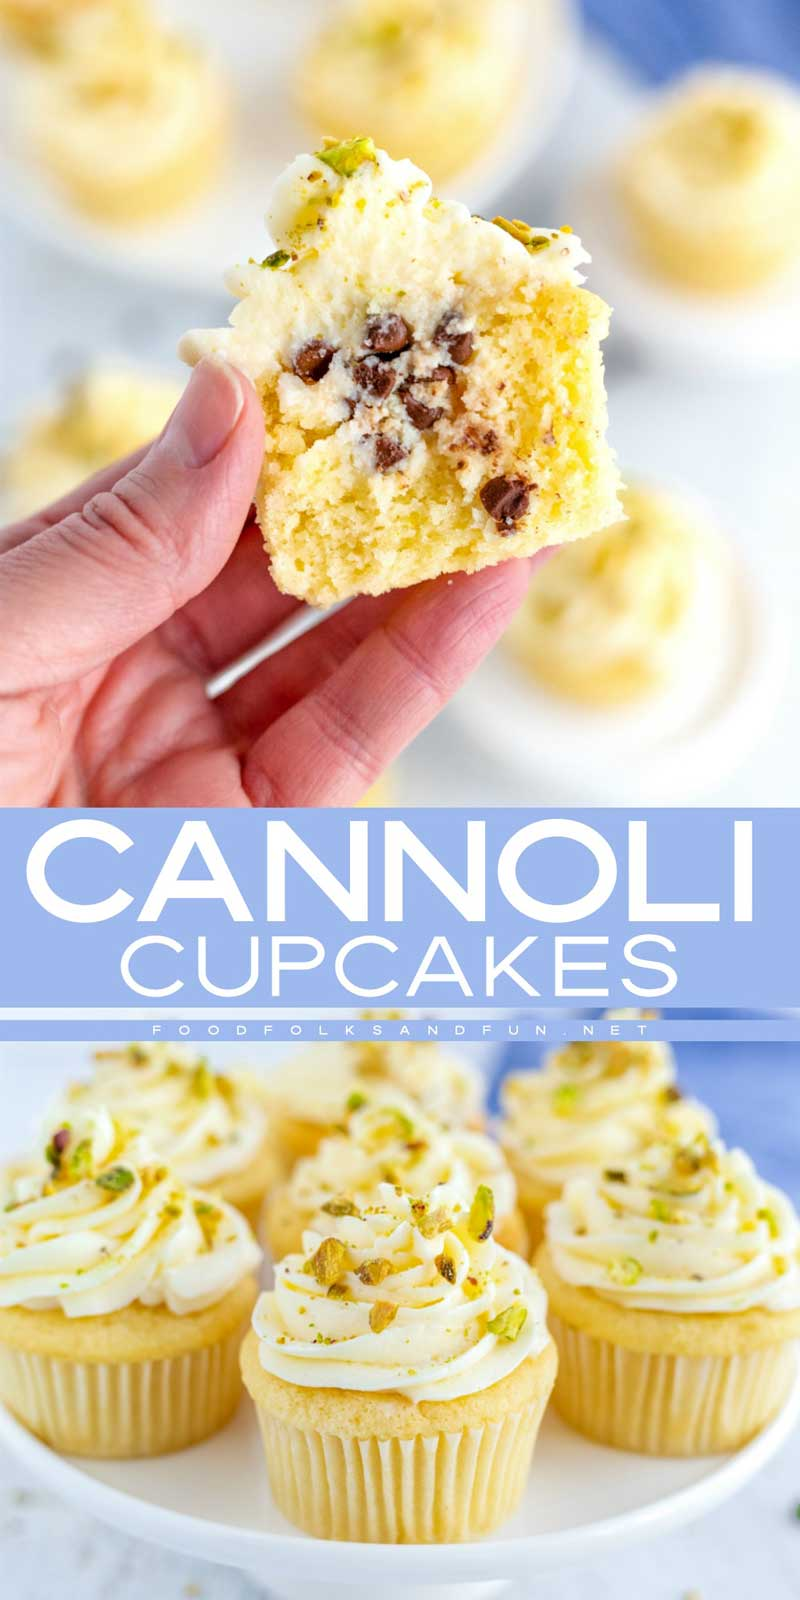 These Cannoli Cupcakes have all of the flavors of traditional cannoli, but packed into a cupcake! They're perfect for holidays and bake sales! #cupcakes #cupcakerecipe #cannoli #dessert #Italian #comfortfood #foodfolksandfun via @foodfolksandfun